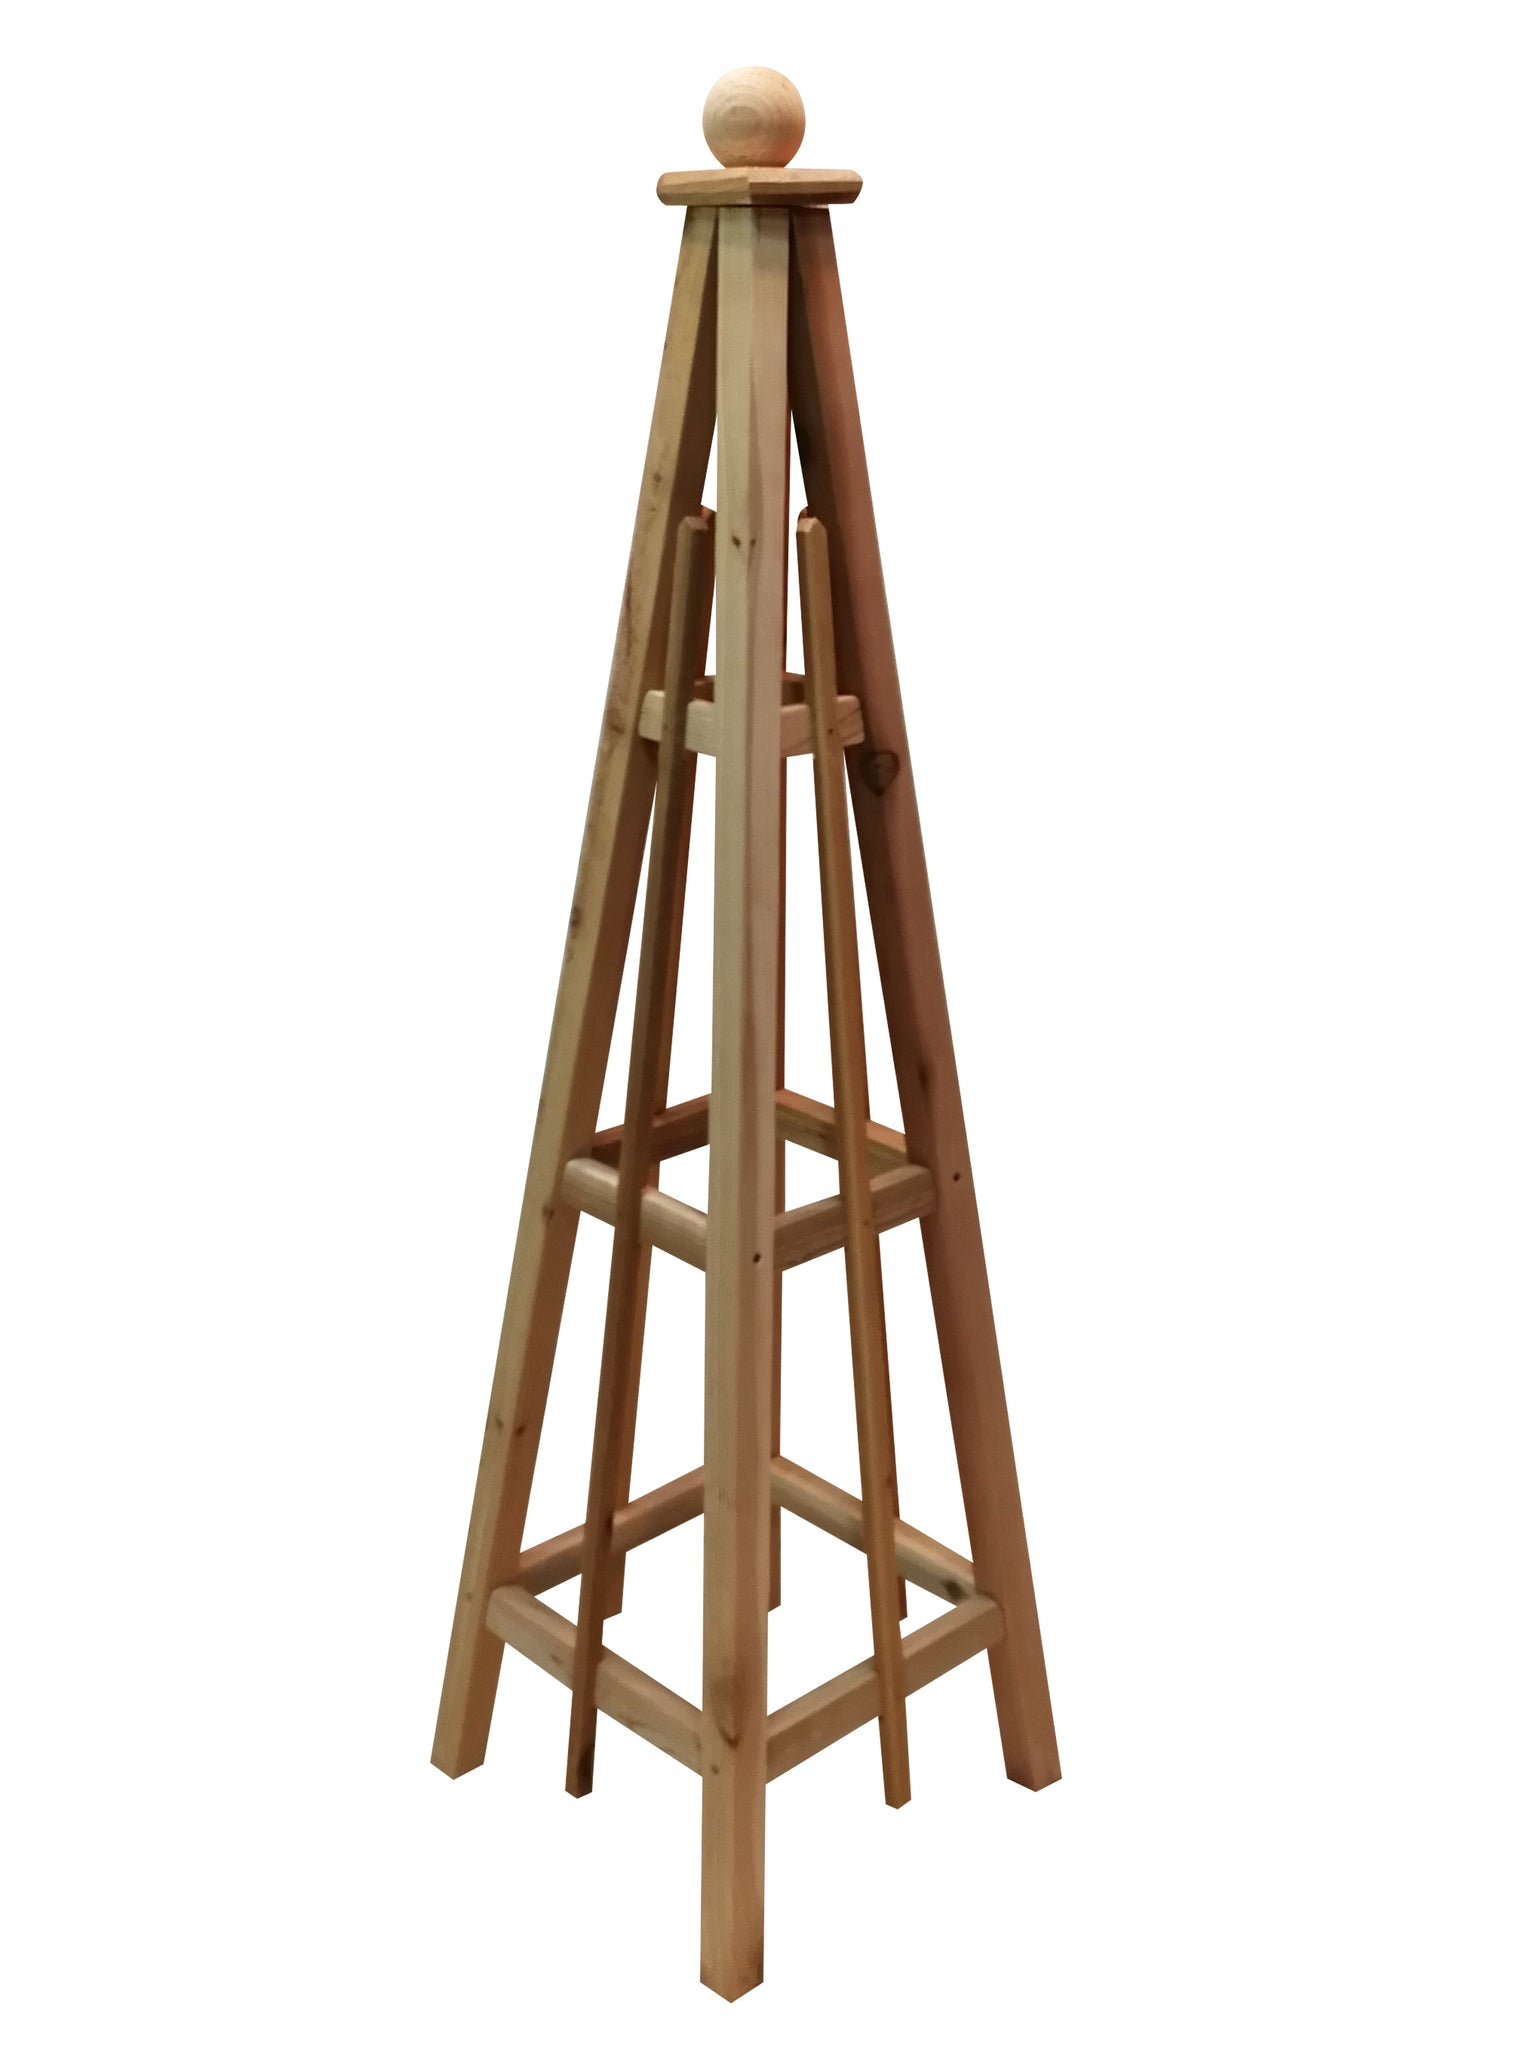 5' Cedar Obelisk, Sphere Top, 3 Rails - Natural Cedar or with Solid White Stain